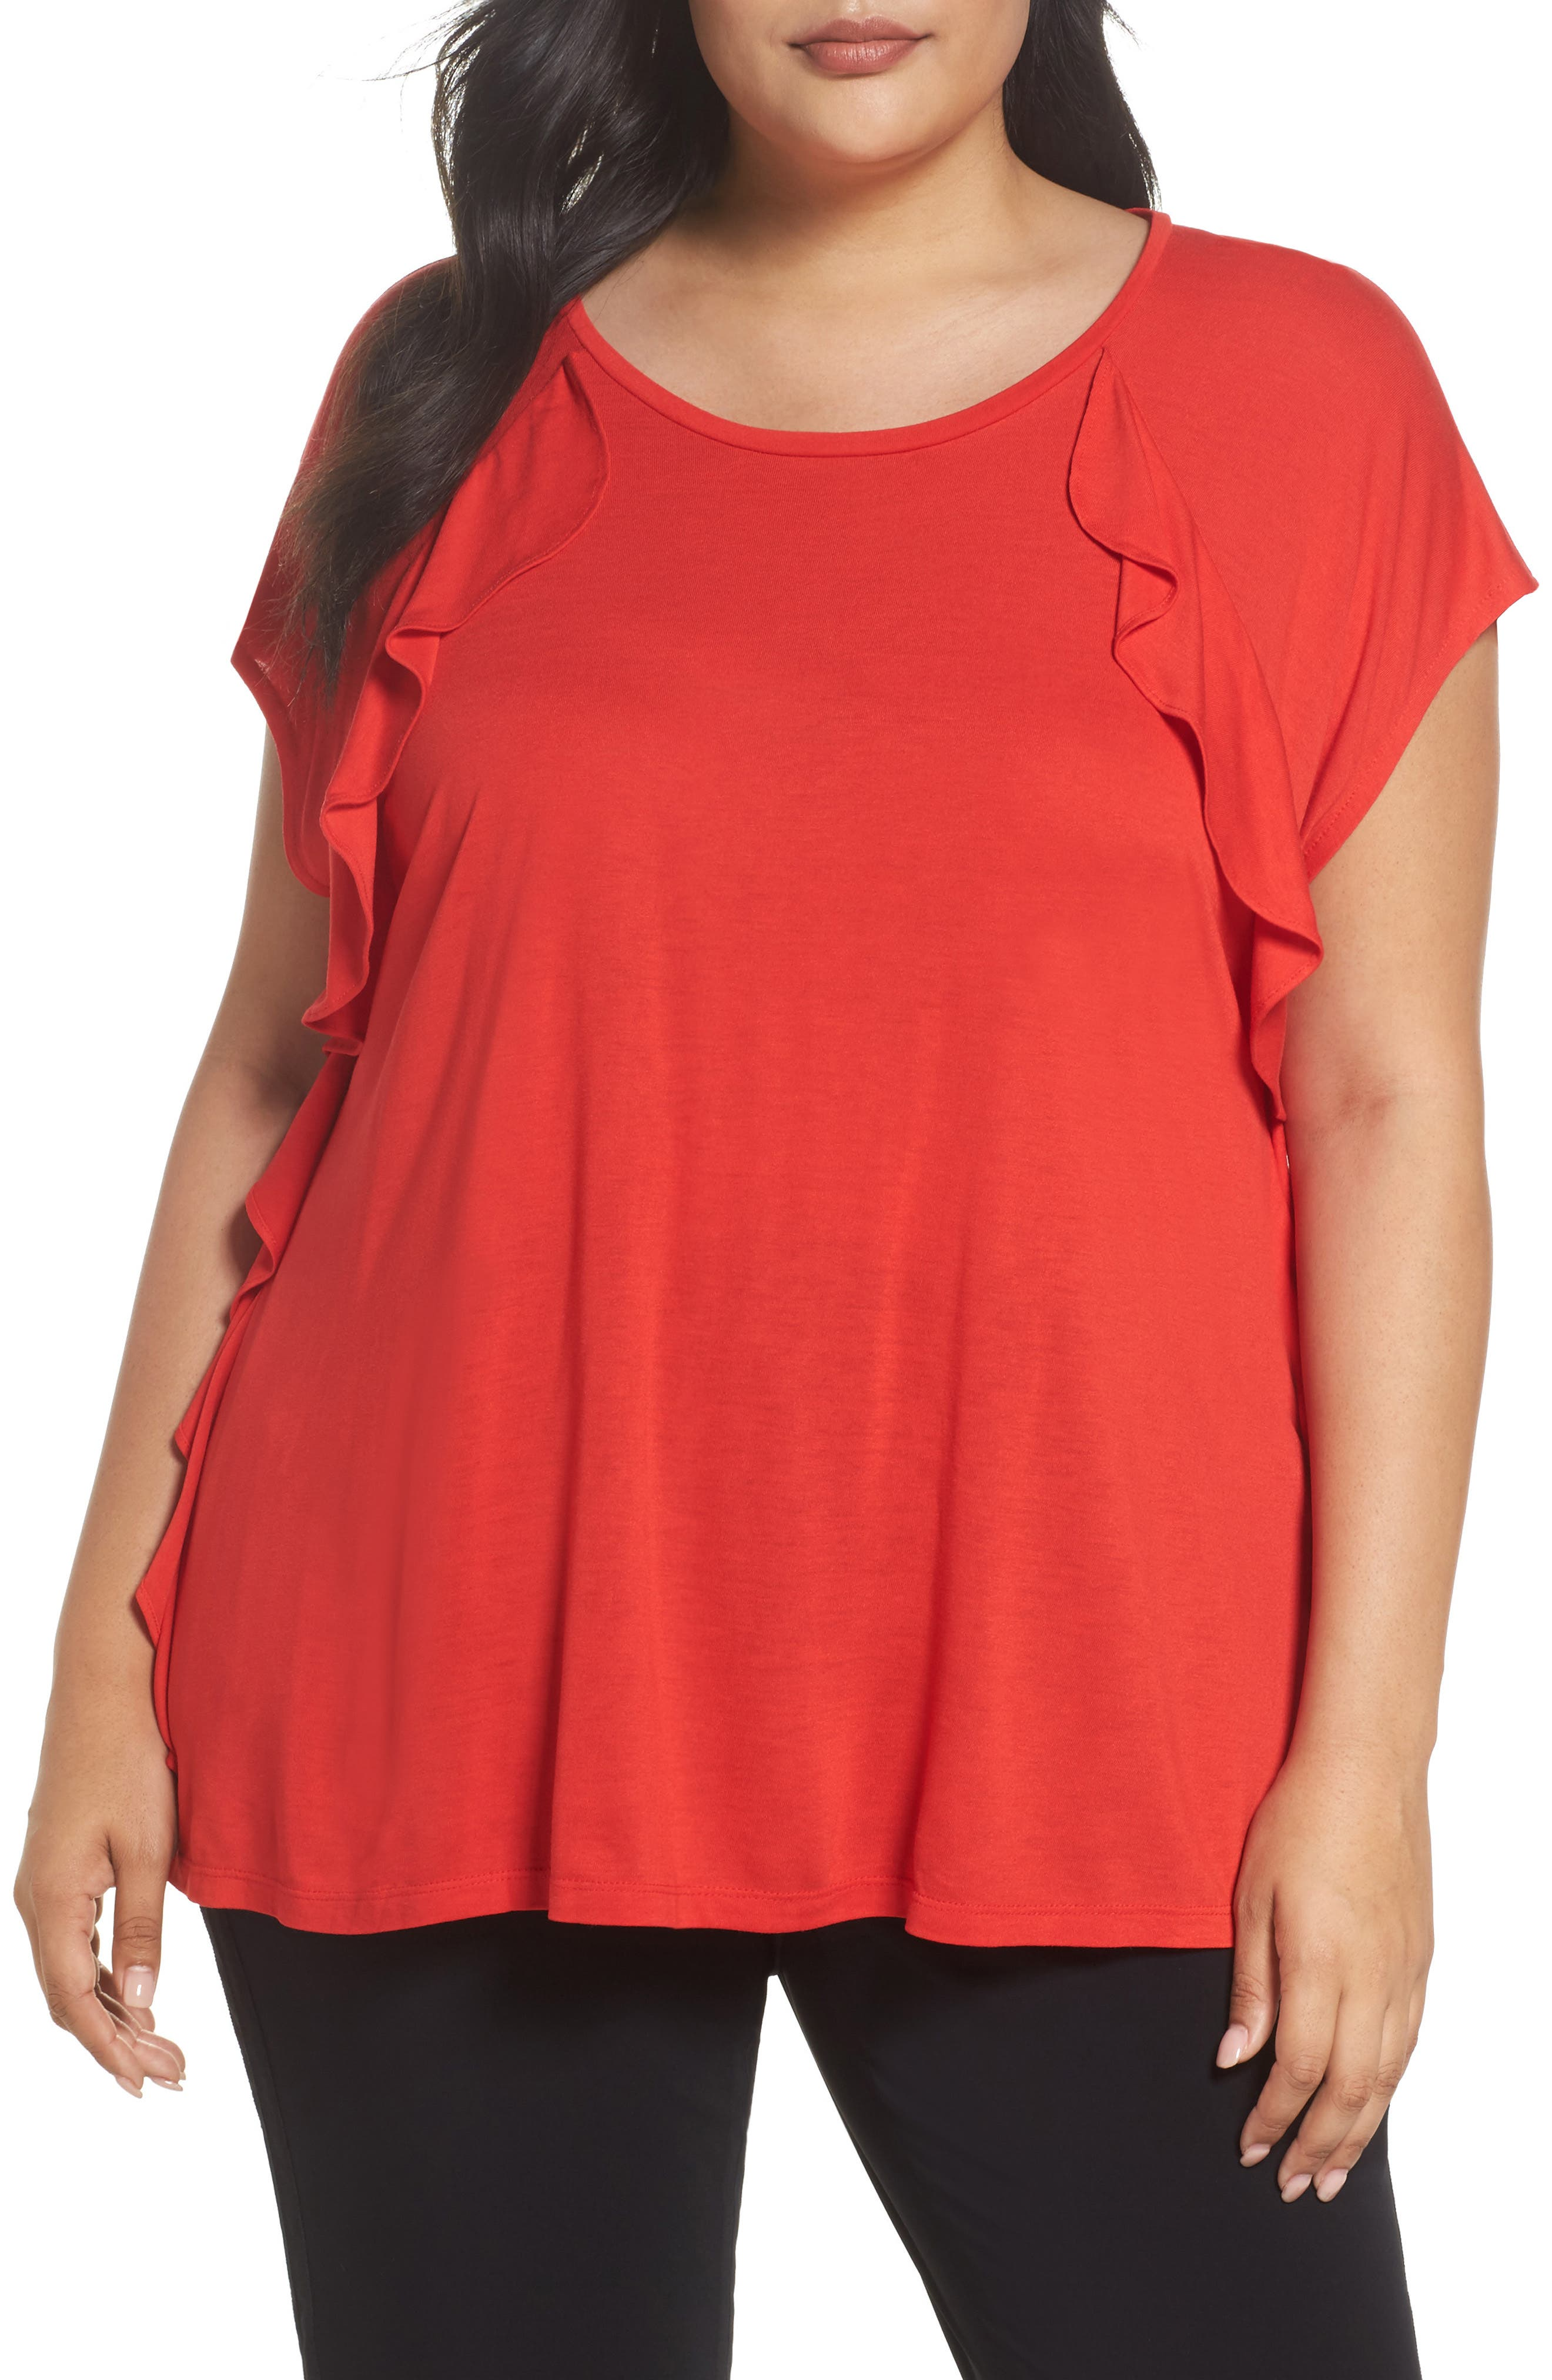 Sejour Ruffle Detail Top (Plus Size)